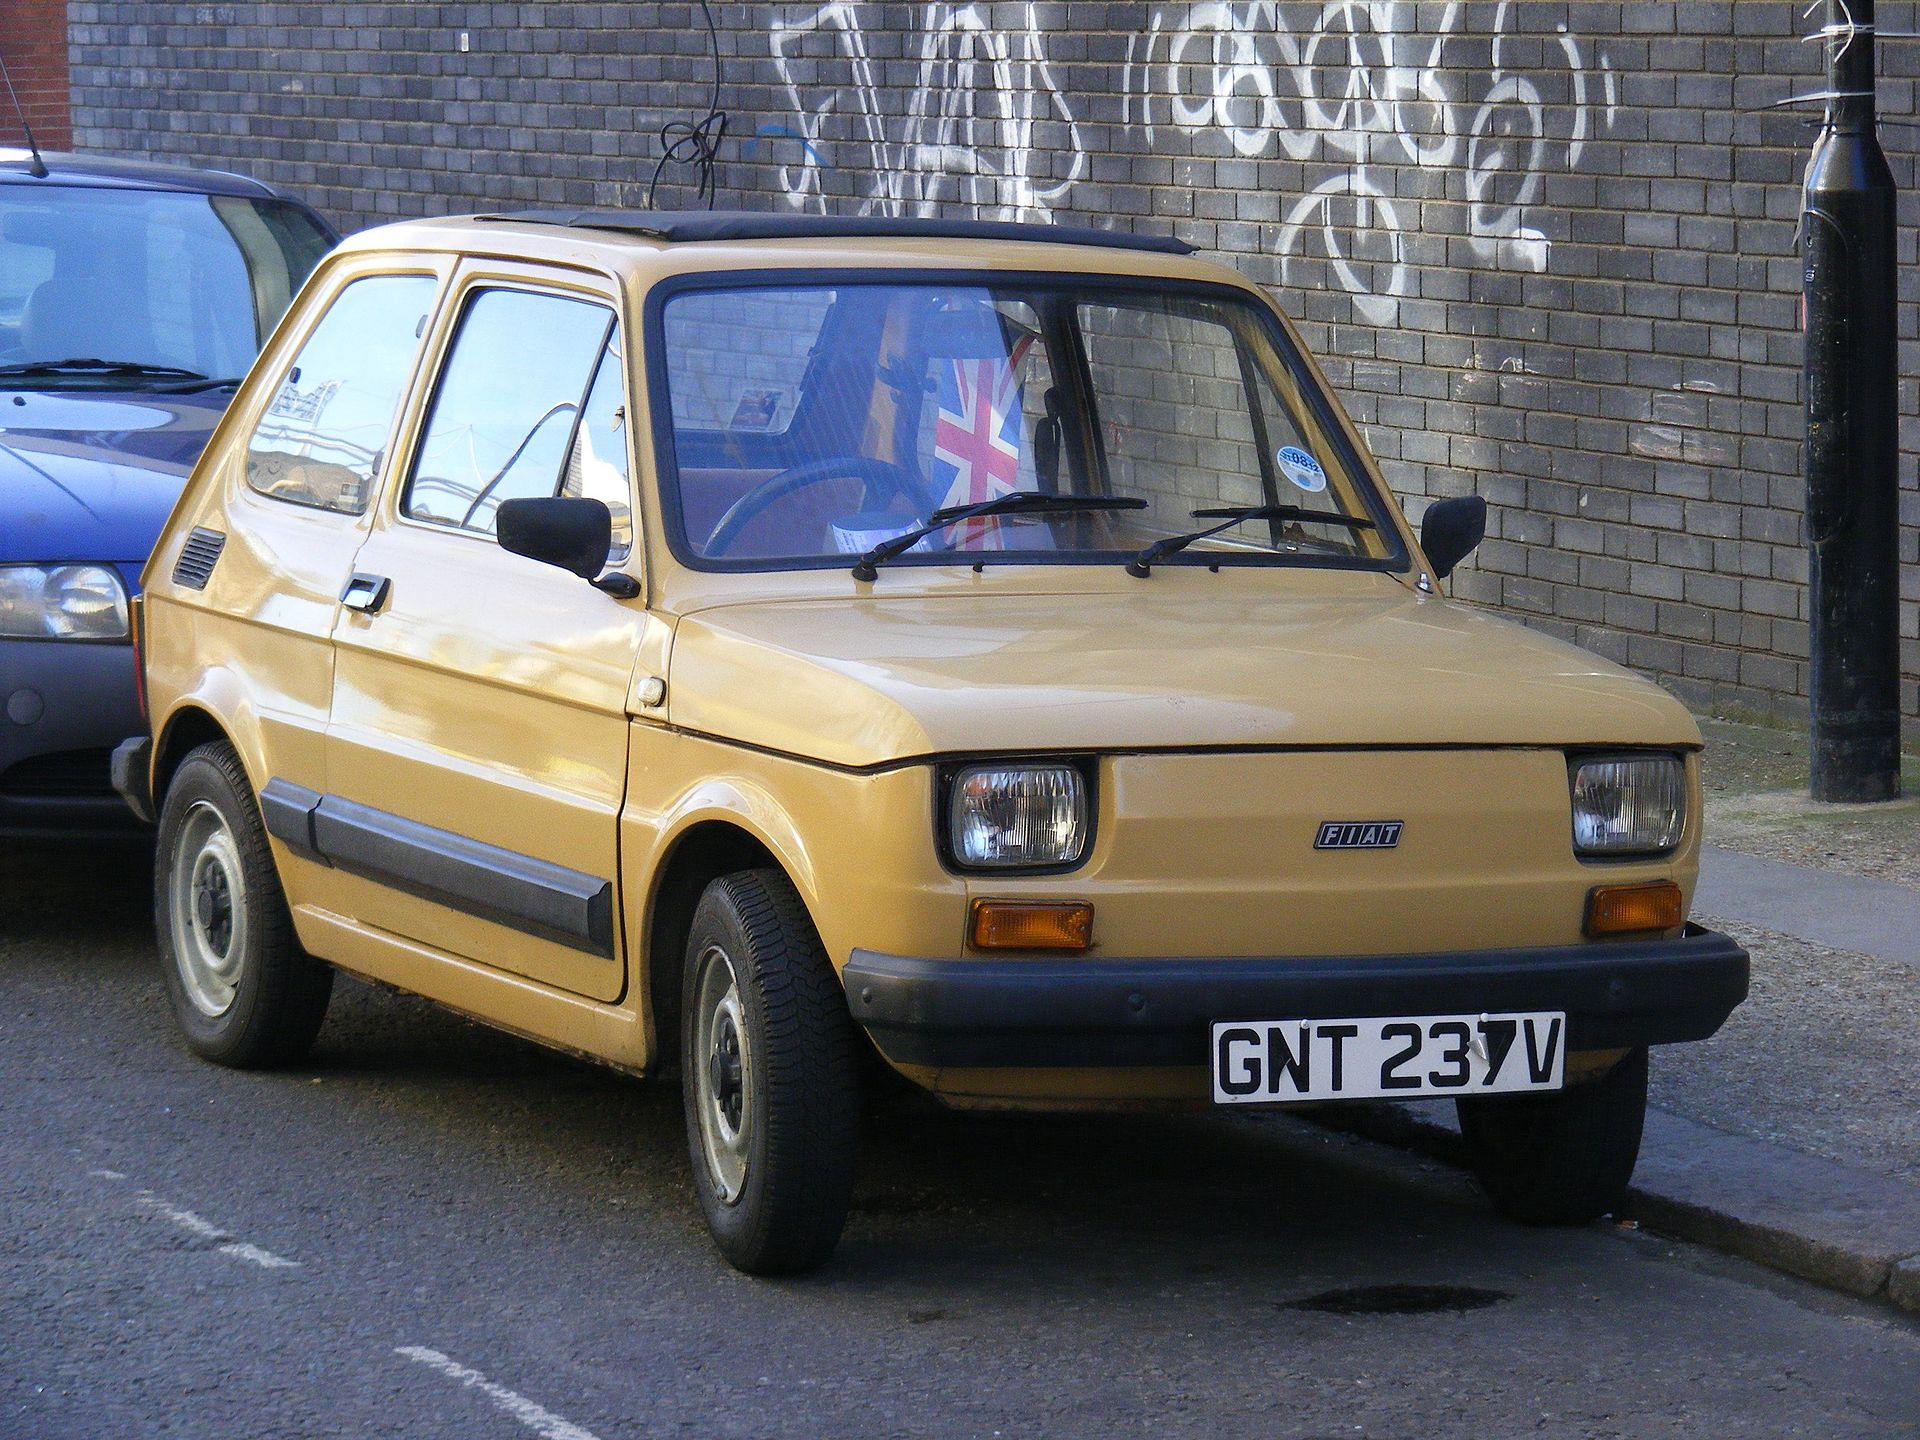 Fiat 126 moreover 2cv Soleil Serie Speciale Imaginaire as well Bakflip G2 Sierra additionally Garage Vary Reife Golf Mk5 Rear Spoiler likewise Photo. on fiat 500 series